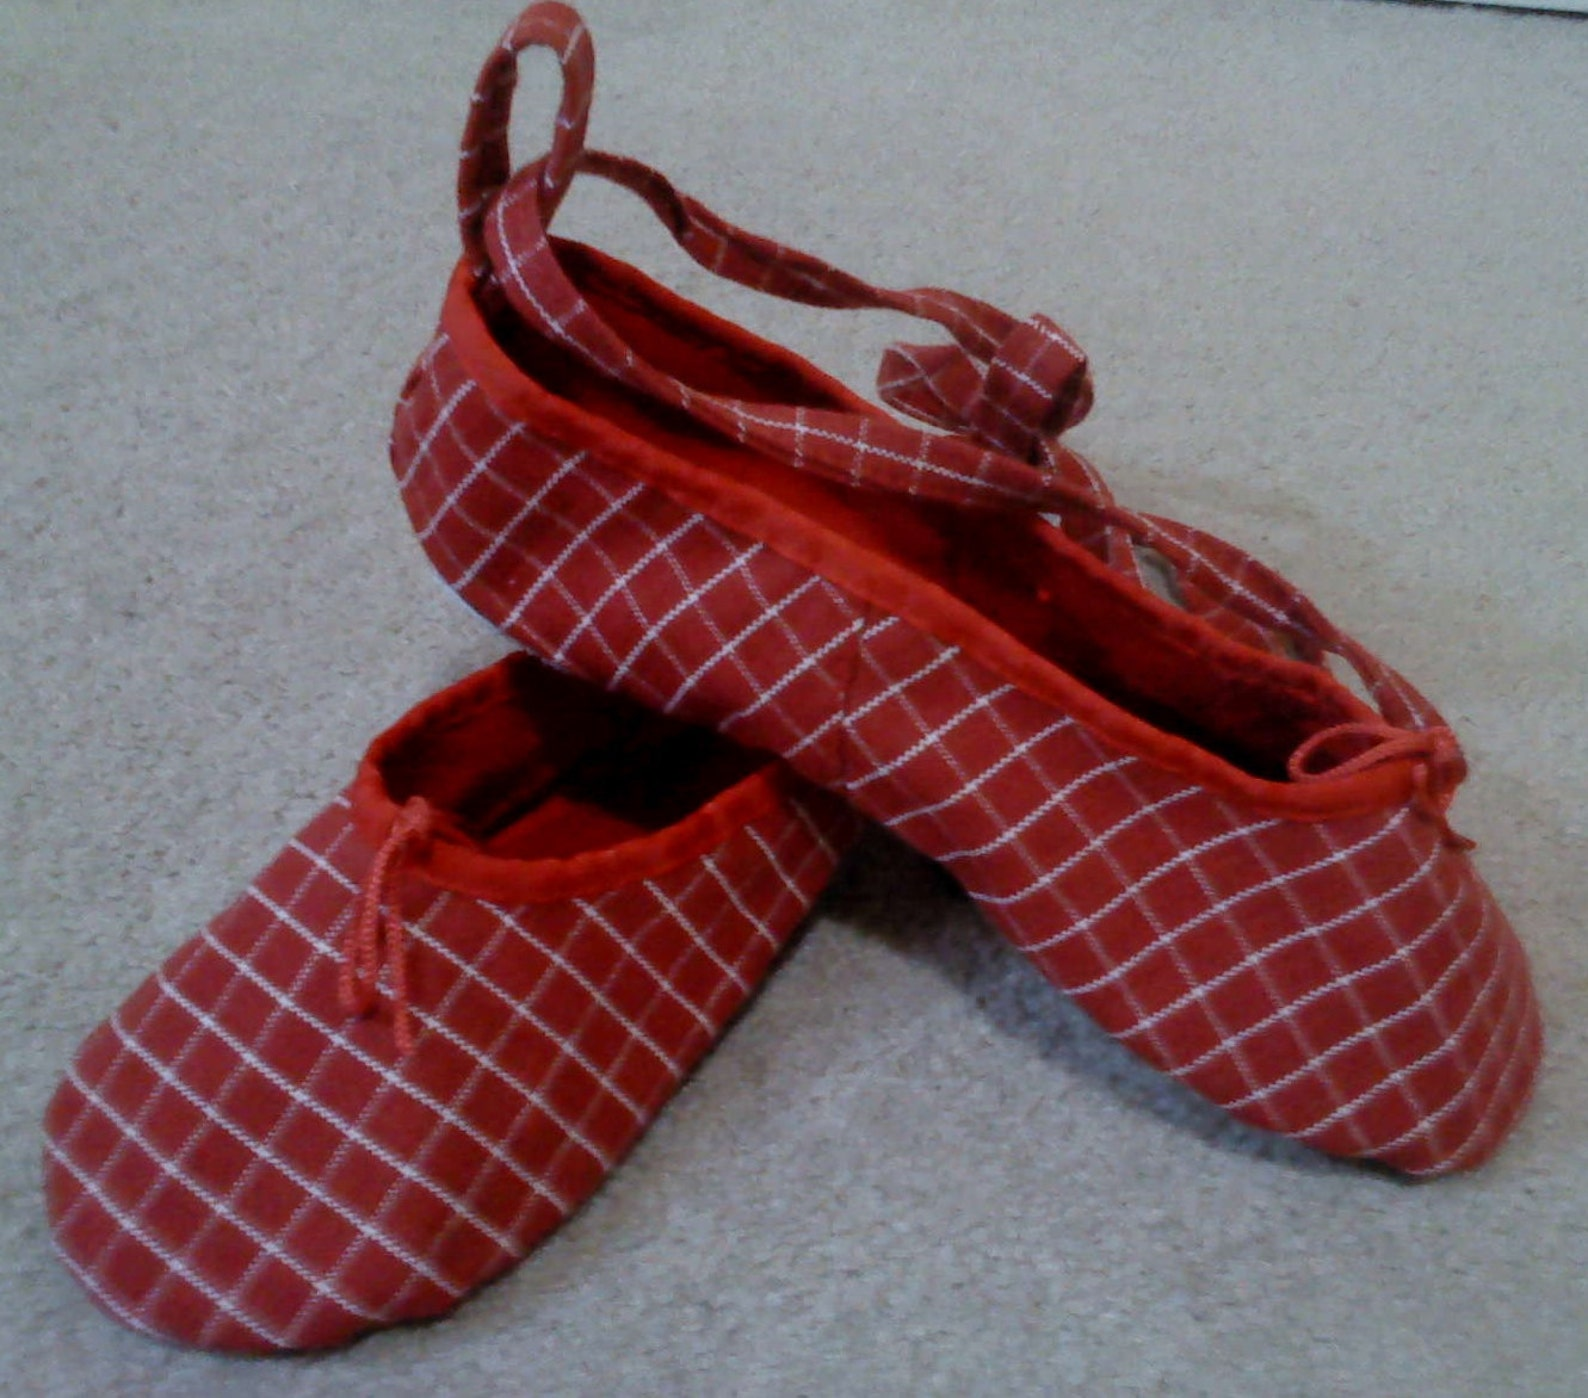 red checked canvas ballet slippers with ankle tie- women's size 7 us / 6 au